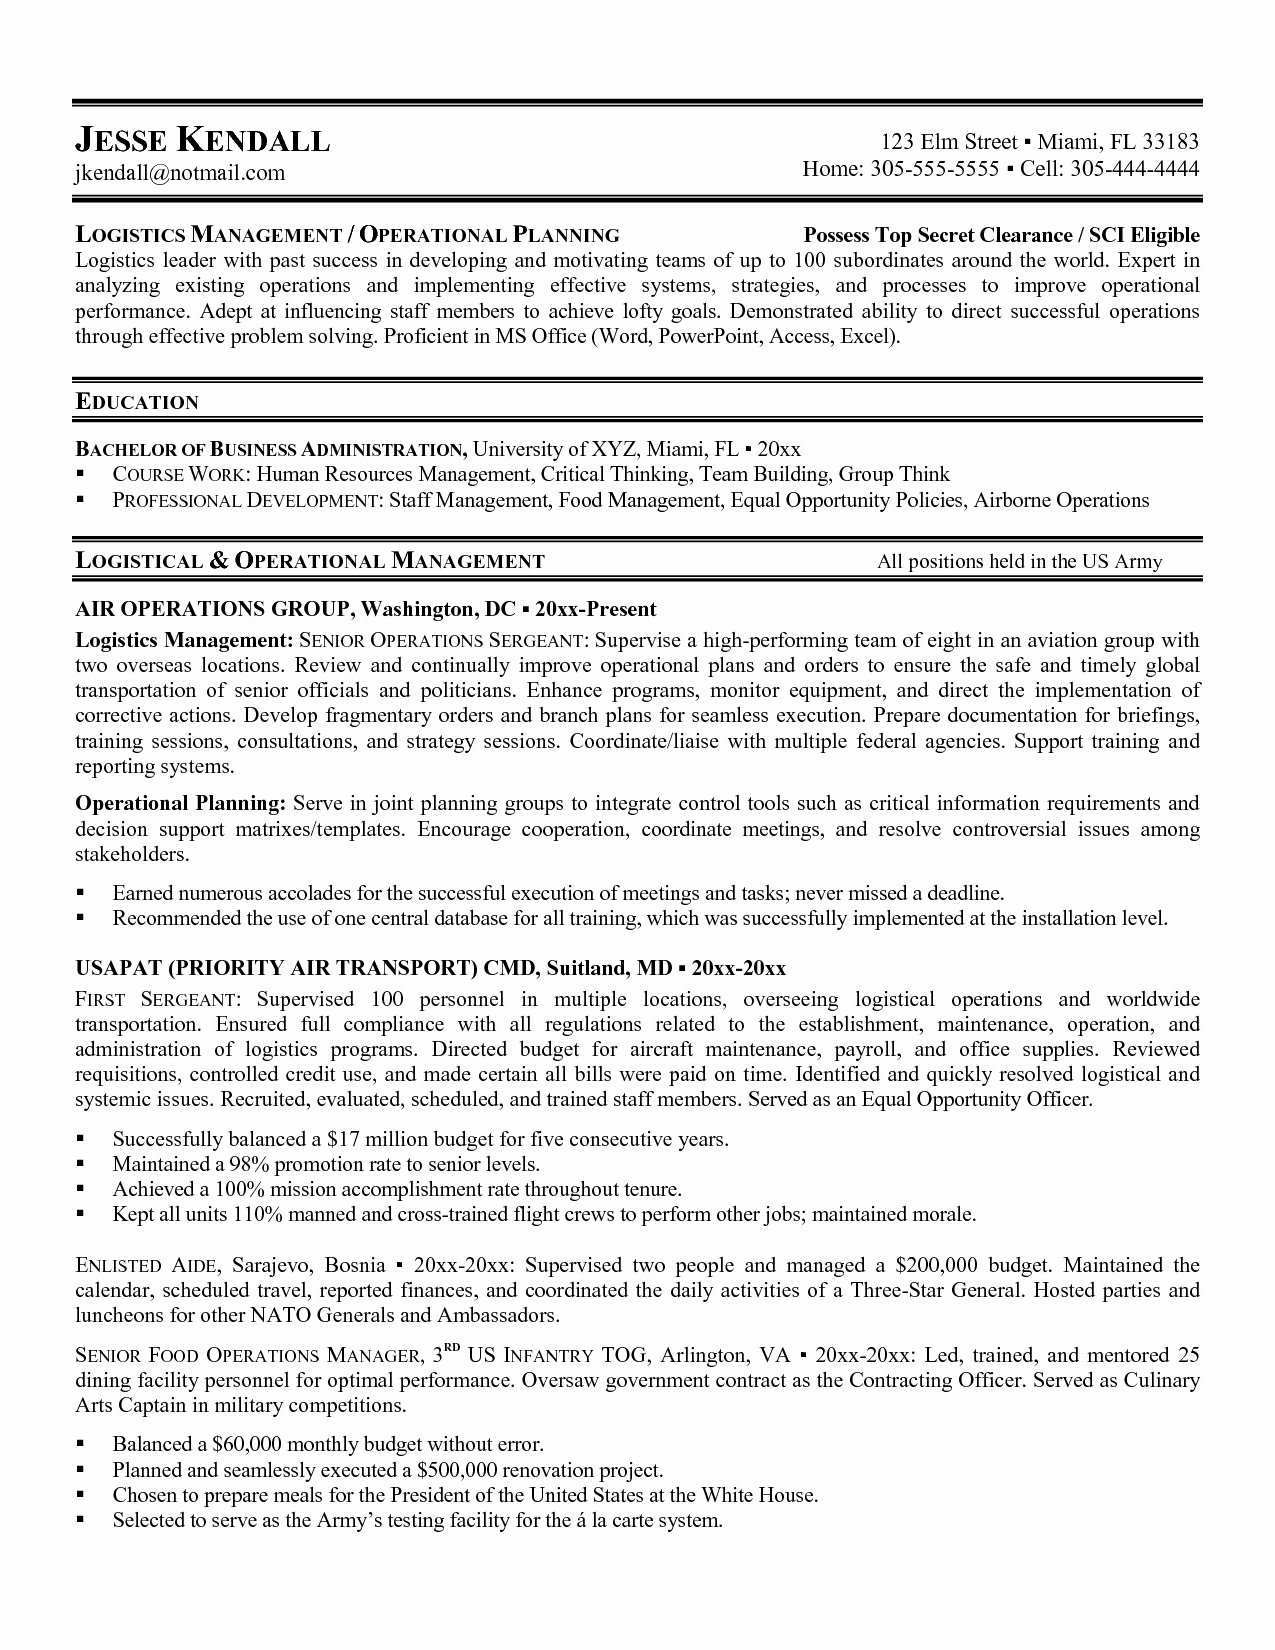 zonealarm results military recruiter resume army best ideas of cv cover letter sample Resume Military Recruiter Resume